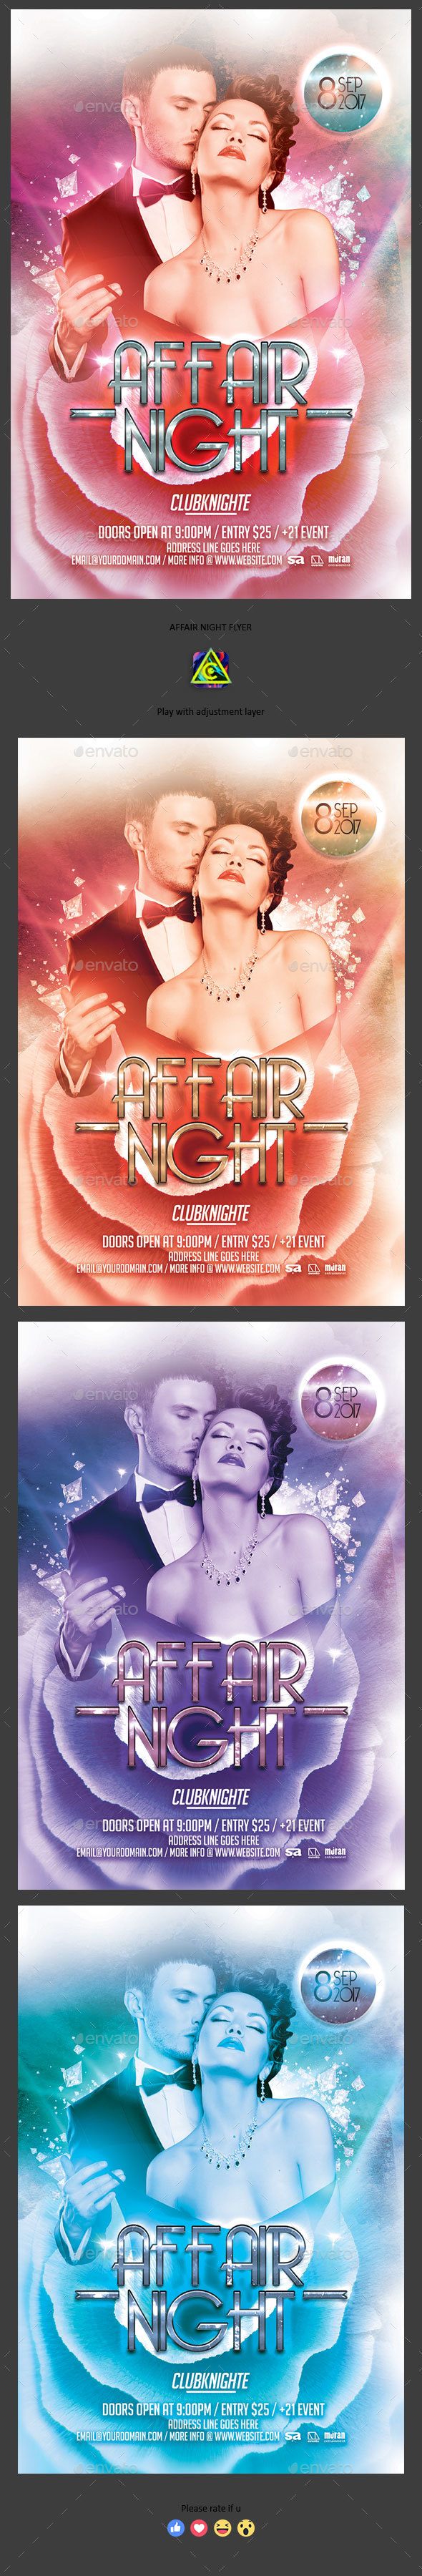 Affair Night Flyer - Clubs & Parties Events